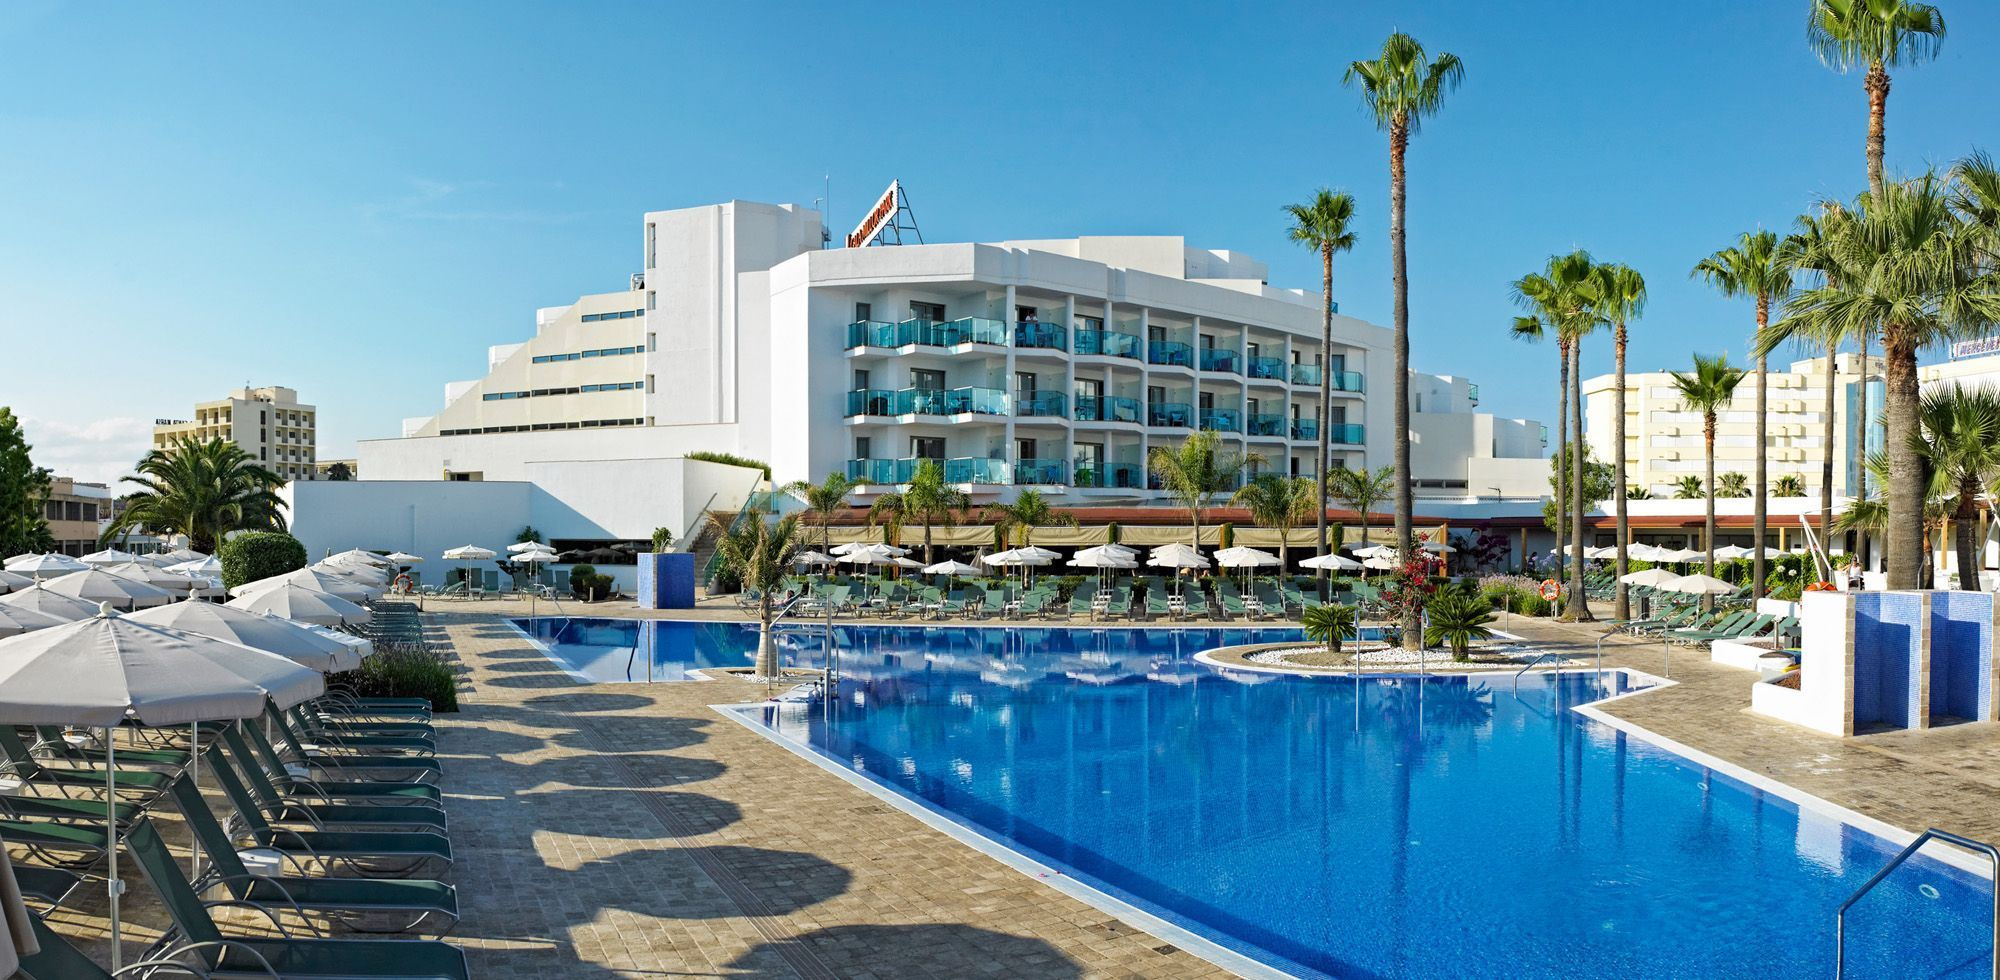 Pool Mallorca Services Offered In Hipotels Cala Millor Park- Majorca